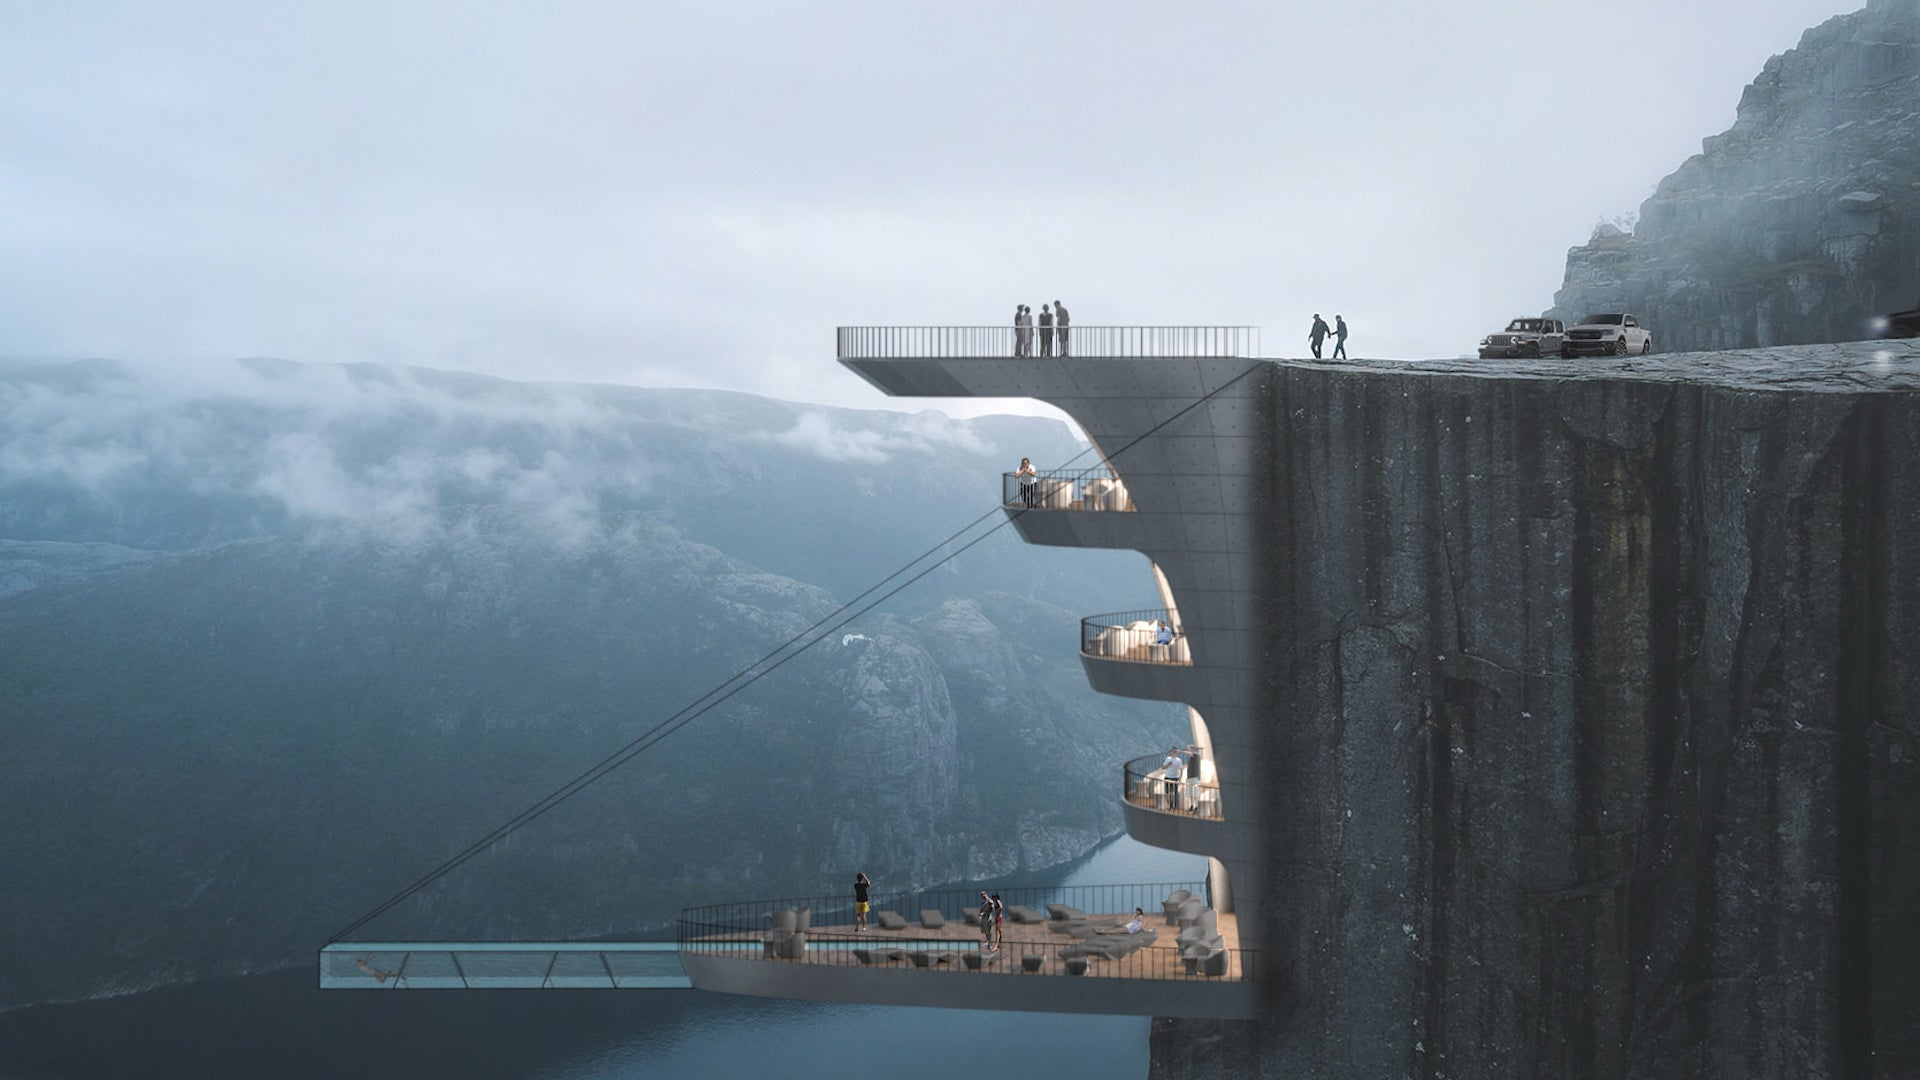 Insane Infinity Pool Designed to Hang Over Cliff in Norway